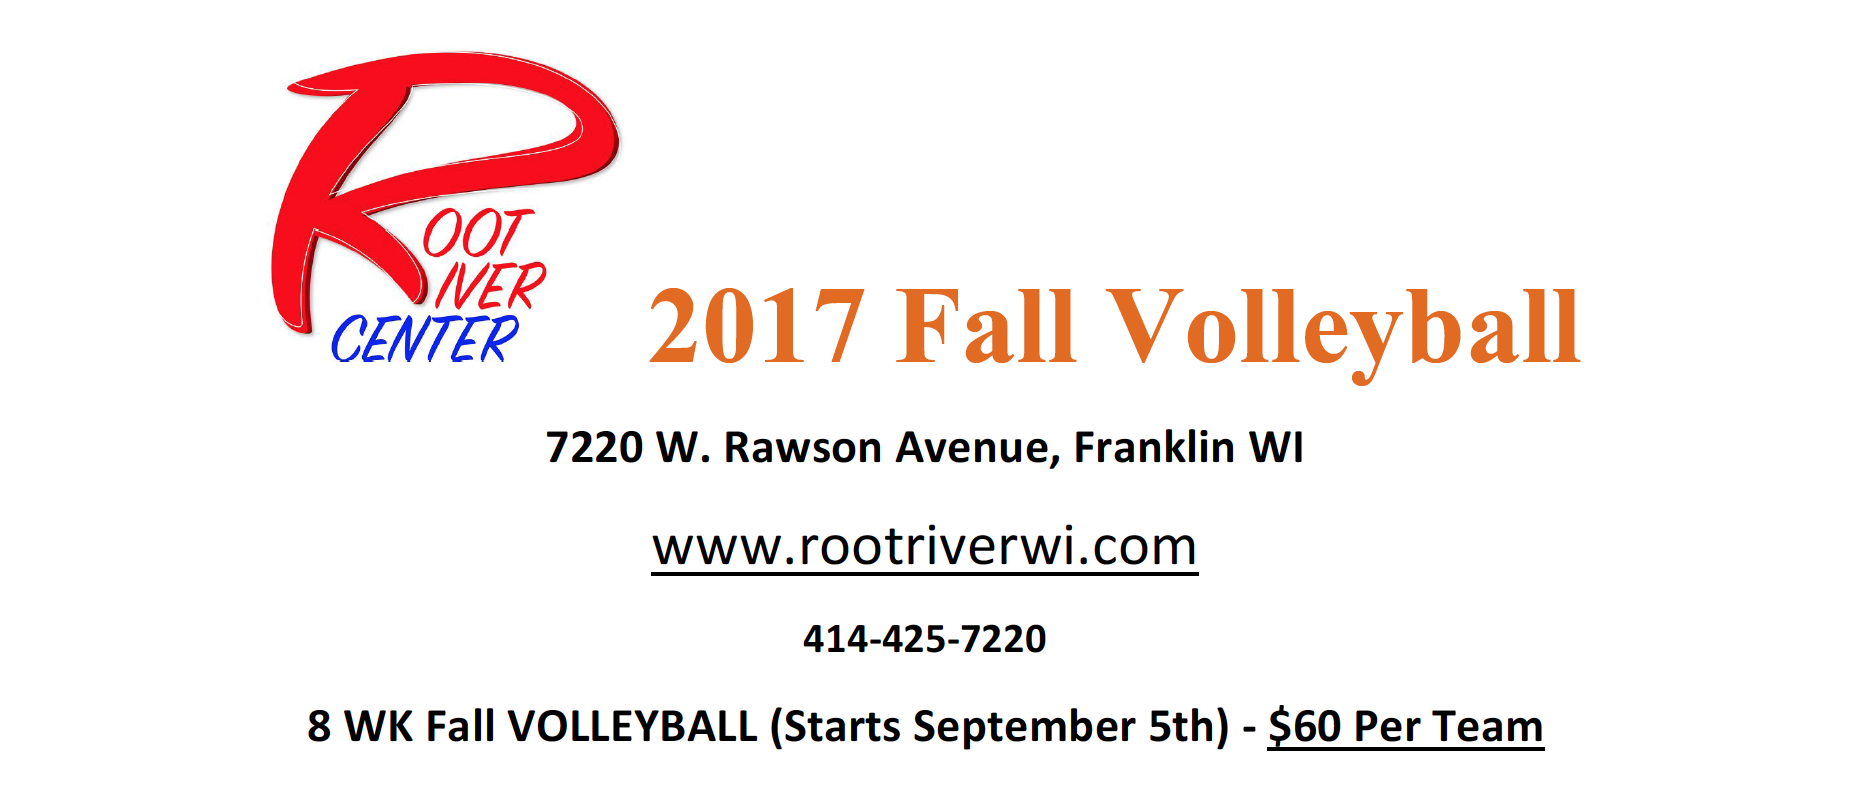 2017 Fall Volleyball Signup Root River Center